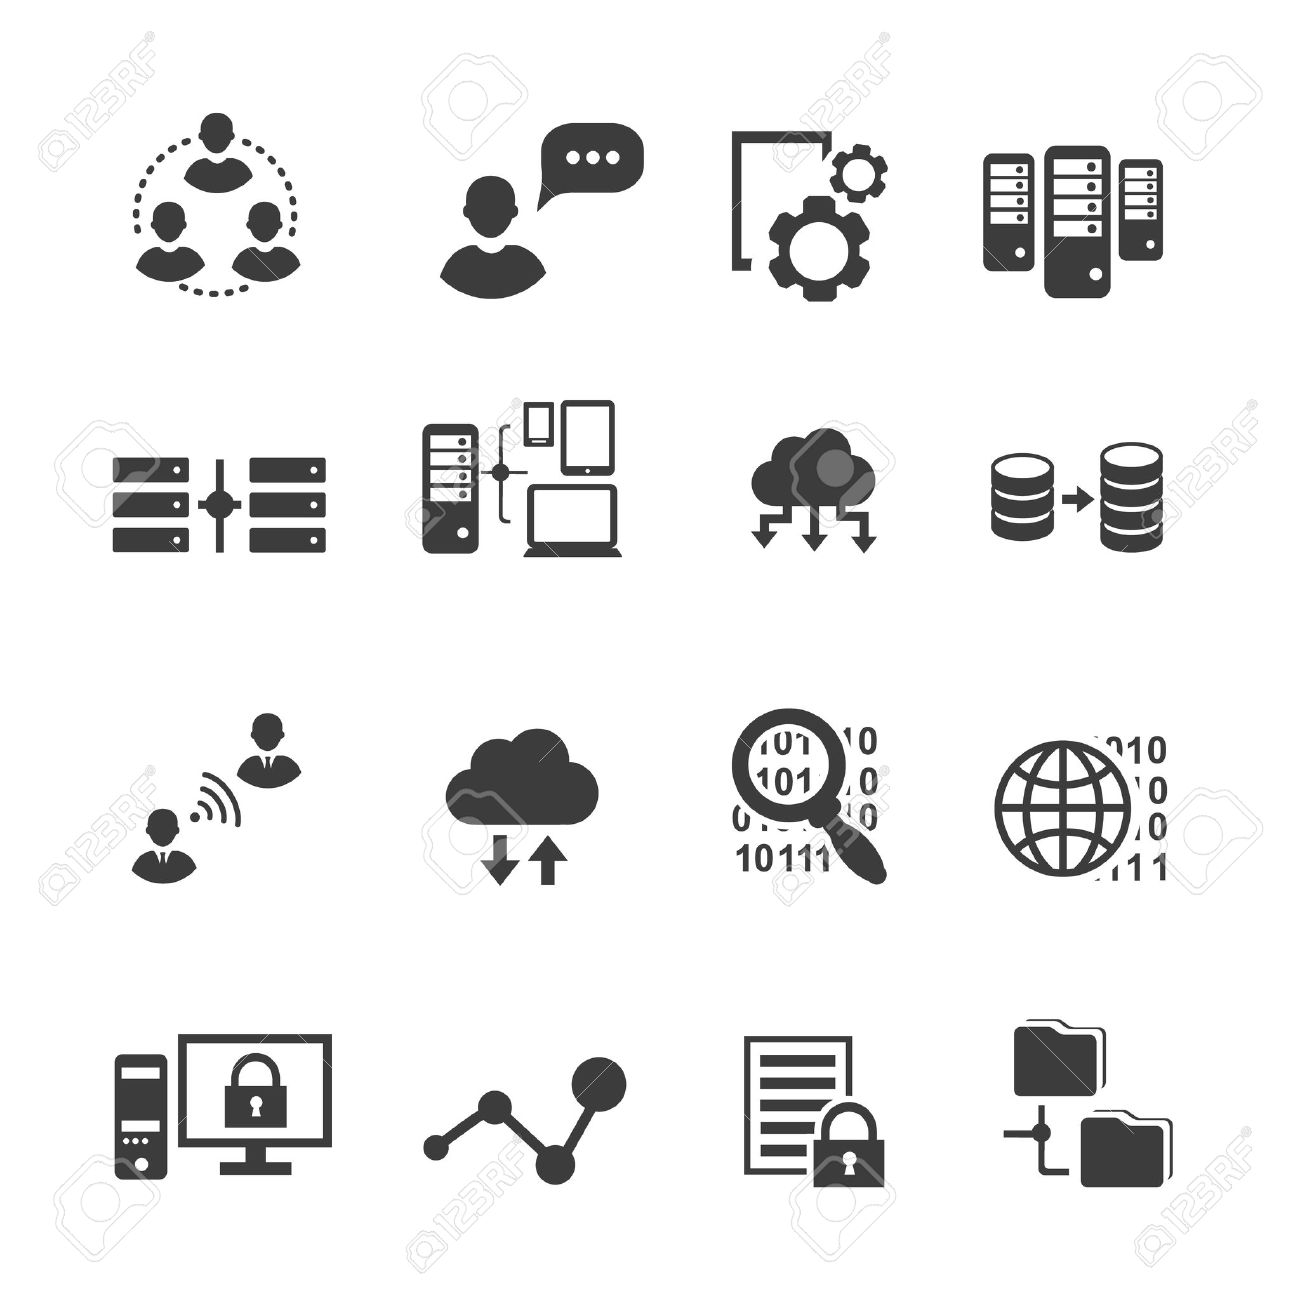 Big Data Icon Set Data Analytics Cloud Computing Digital Royalty Free Cliparts Vectors And Stock Illustration Image 38609145 The next generation of our icon library + toolkit is coming with more icons , more. big data icon set data analytics cloud computing digital